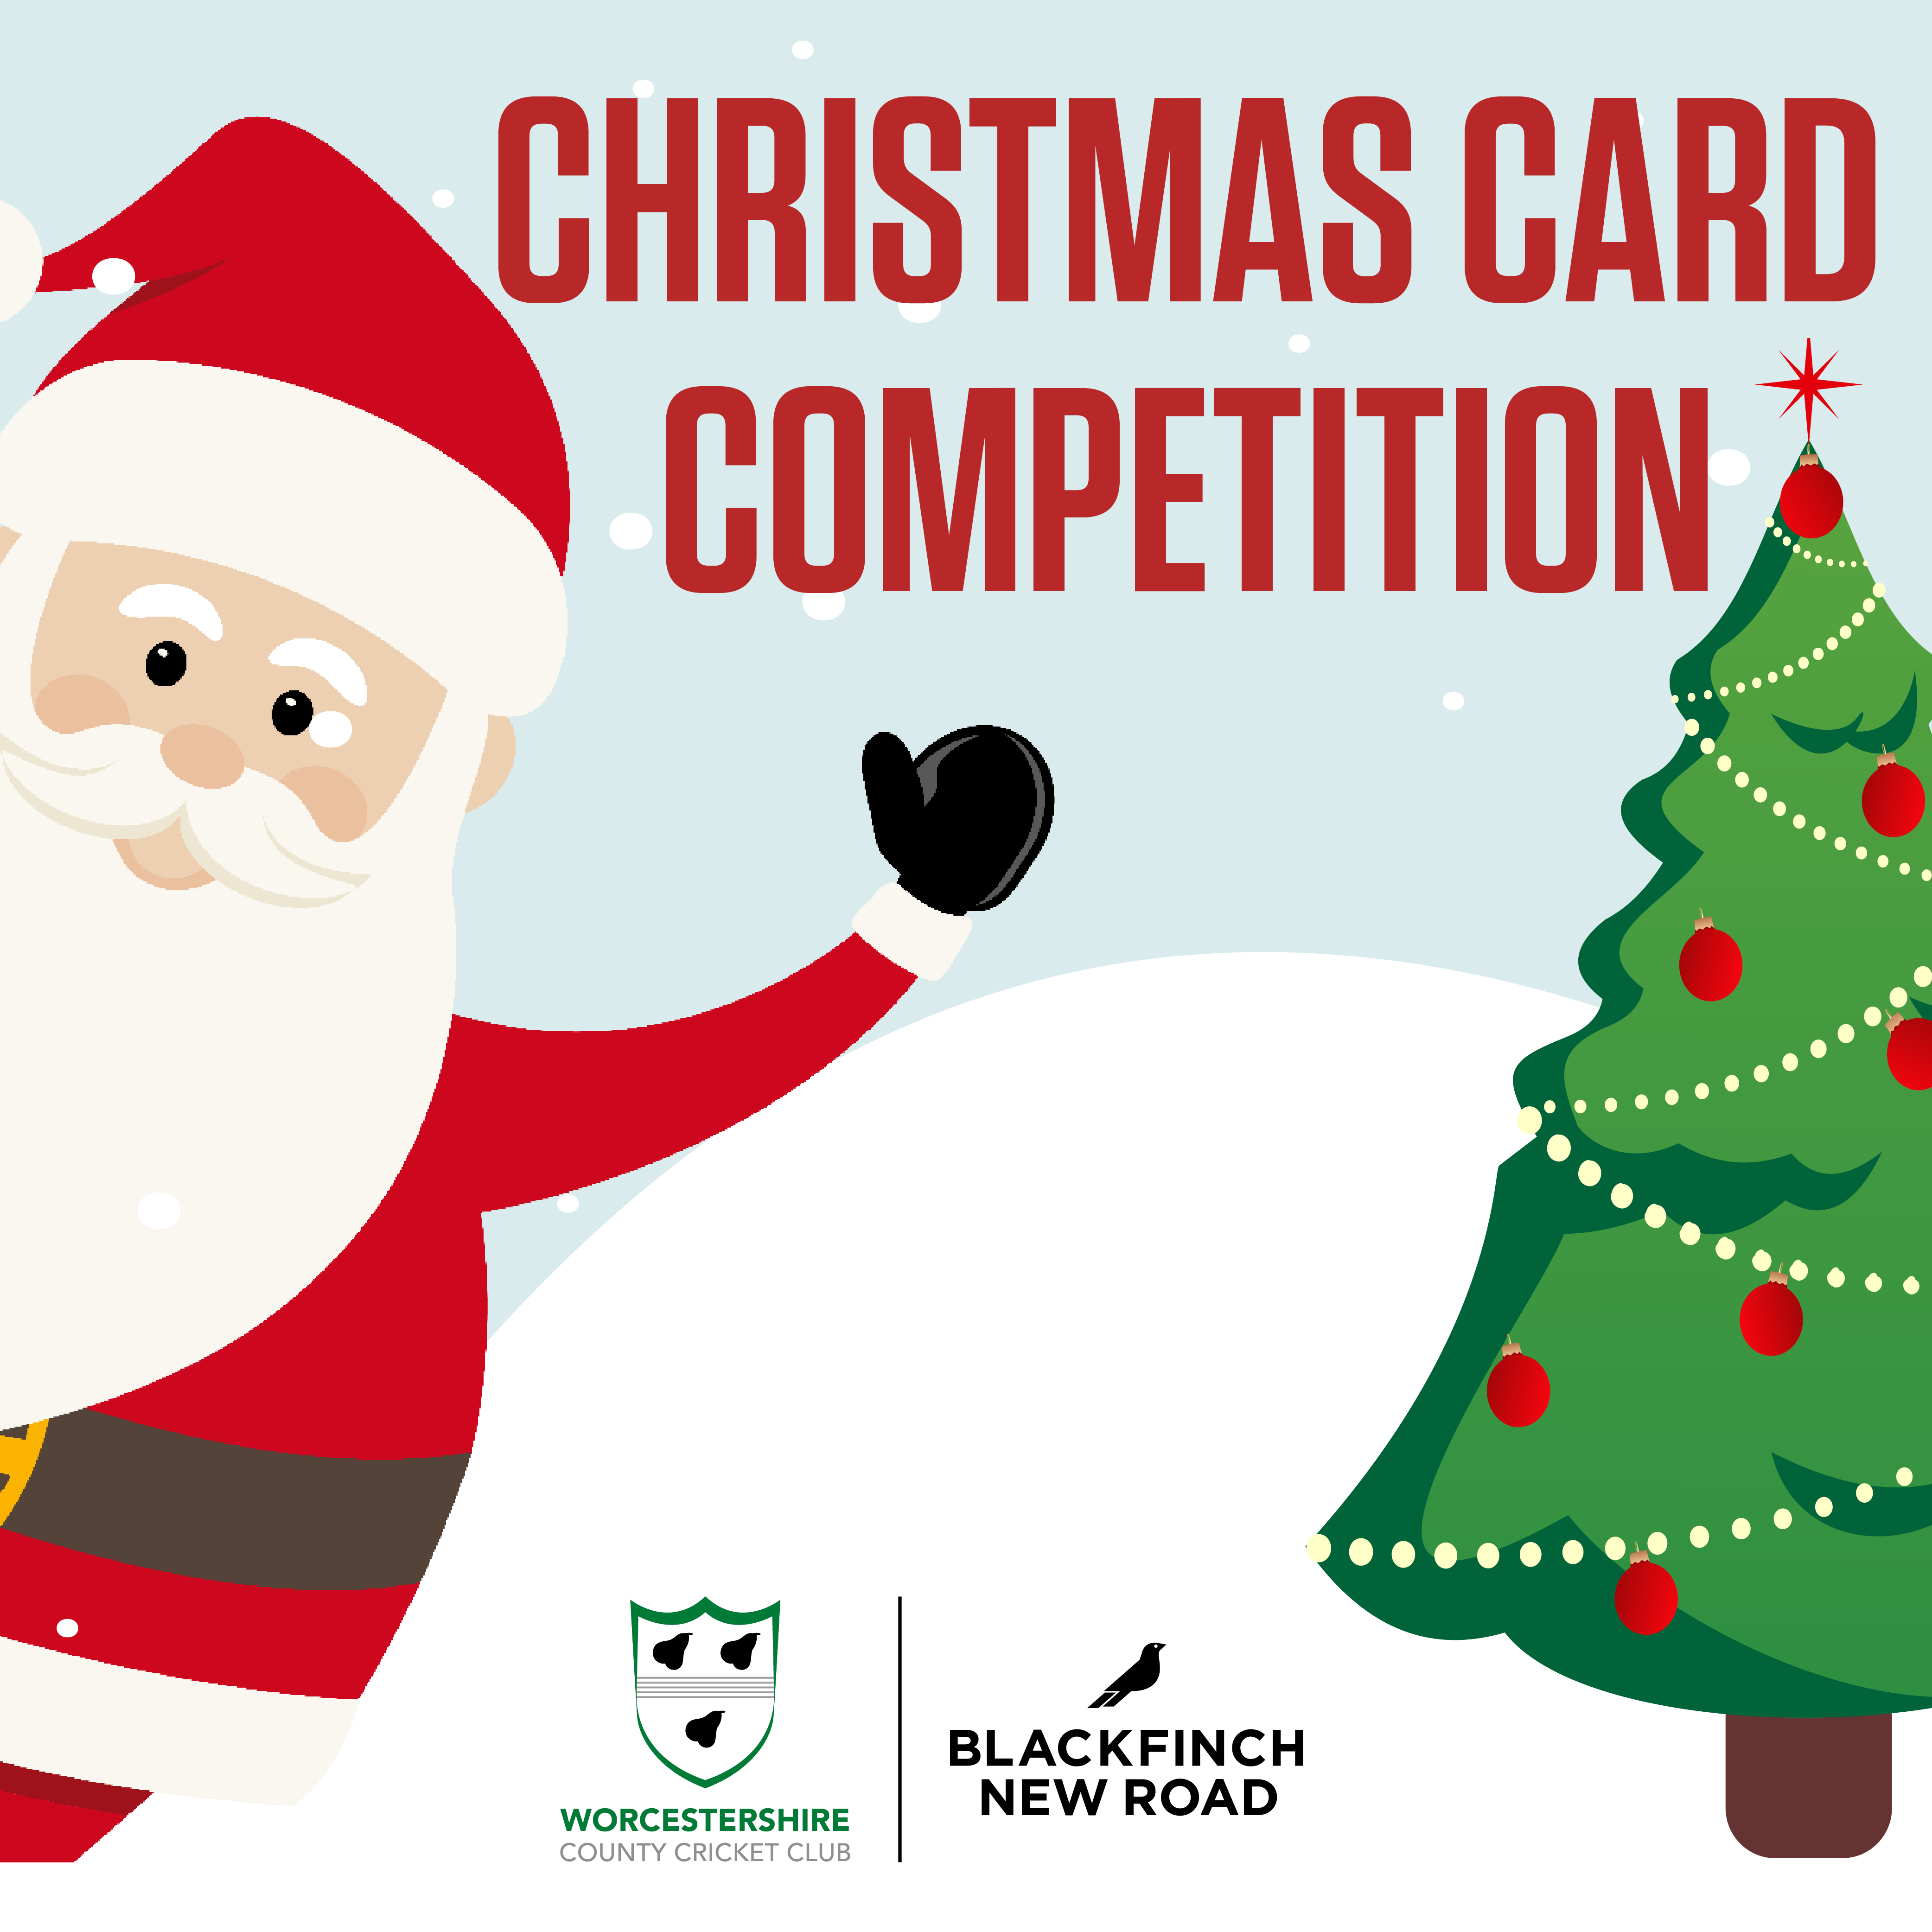 CHRISTMAS CARD COMPETITION 2019 - Worcestershire CCC